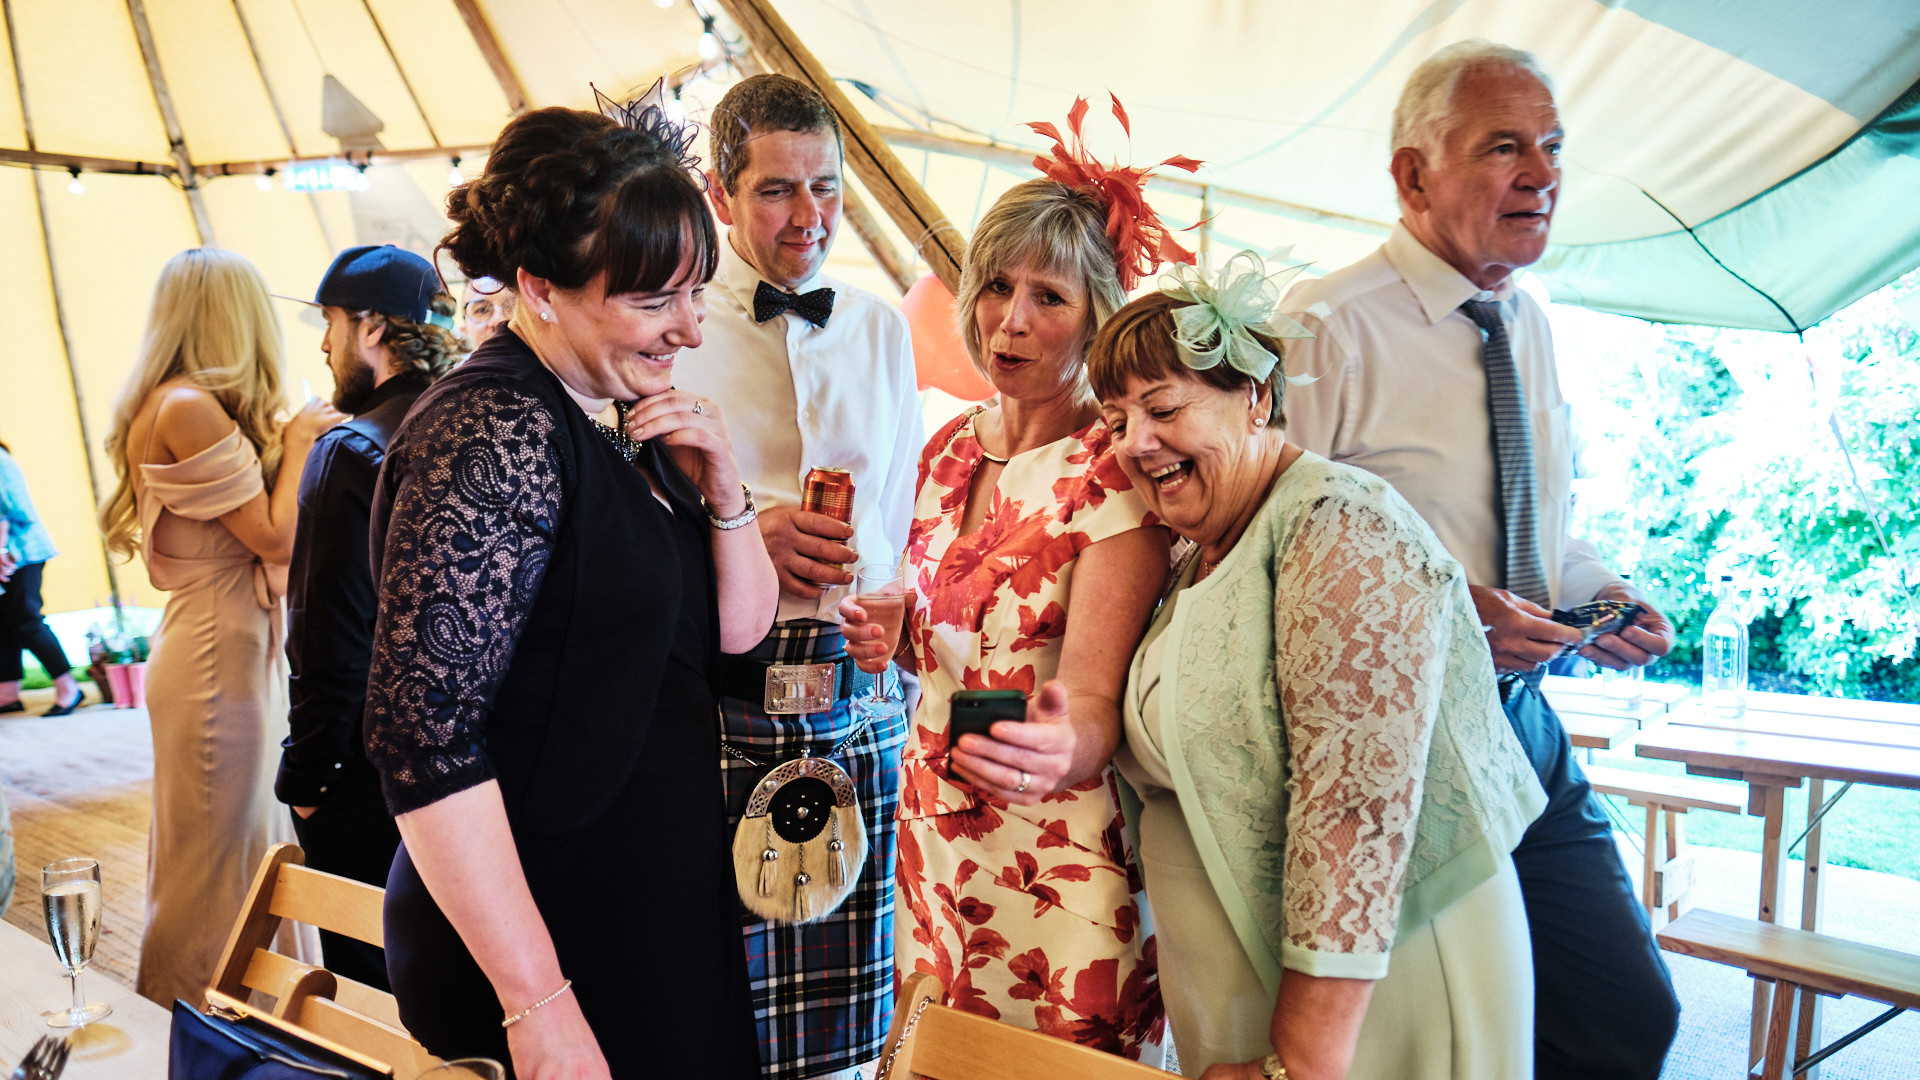 colour photograph of laughing wedding guests looking at a mobile phone